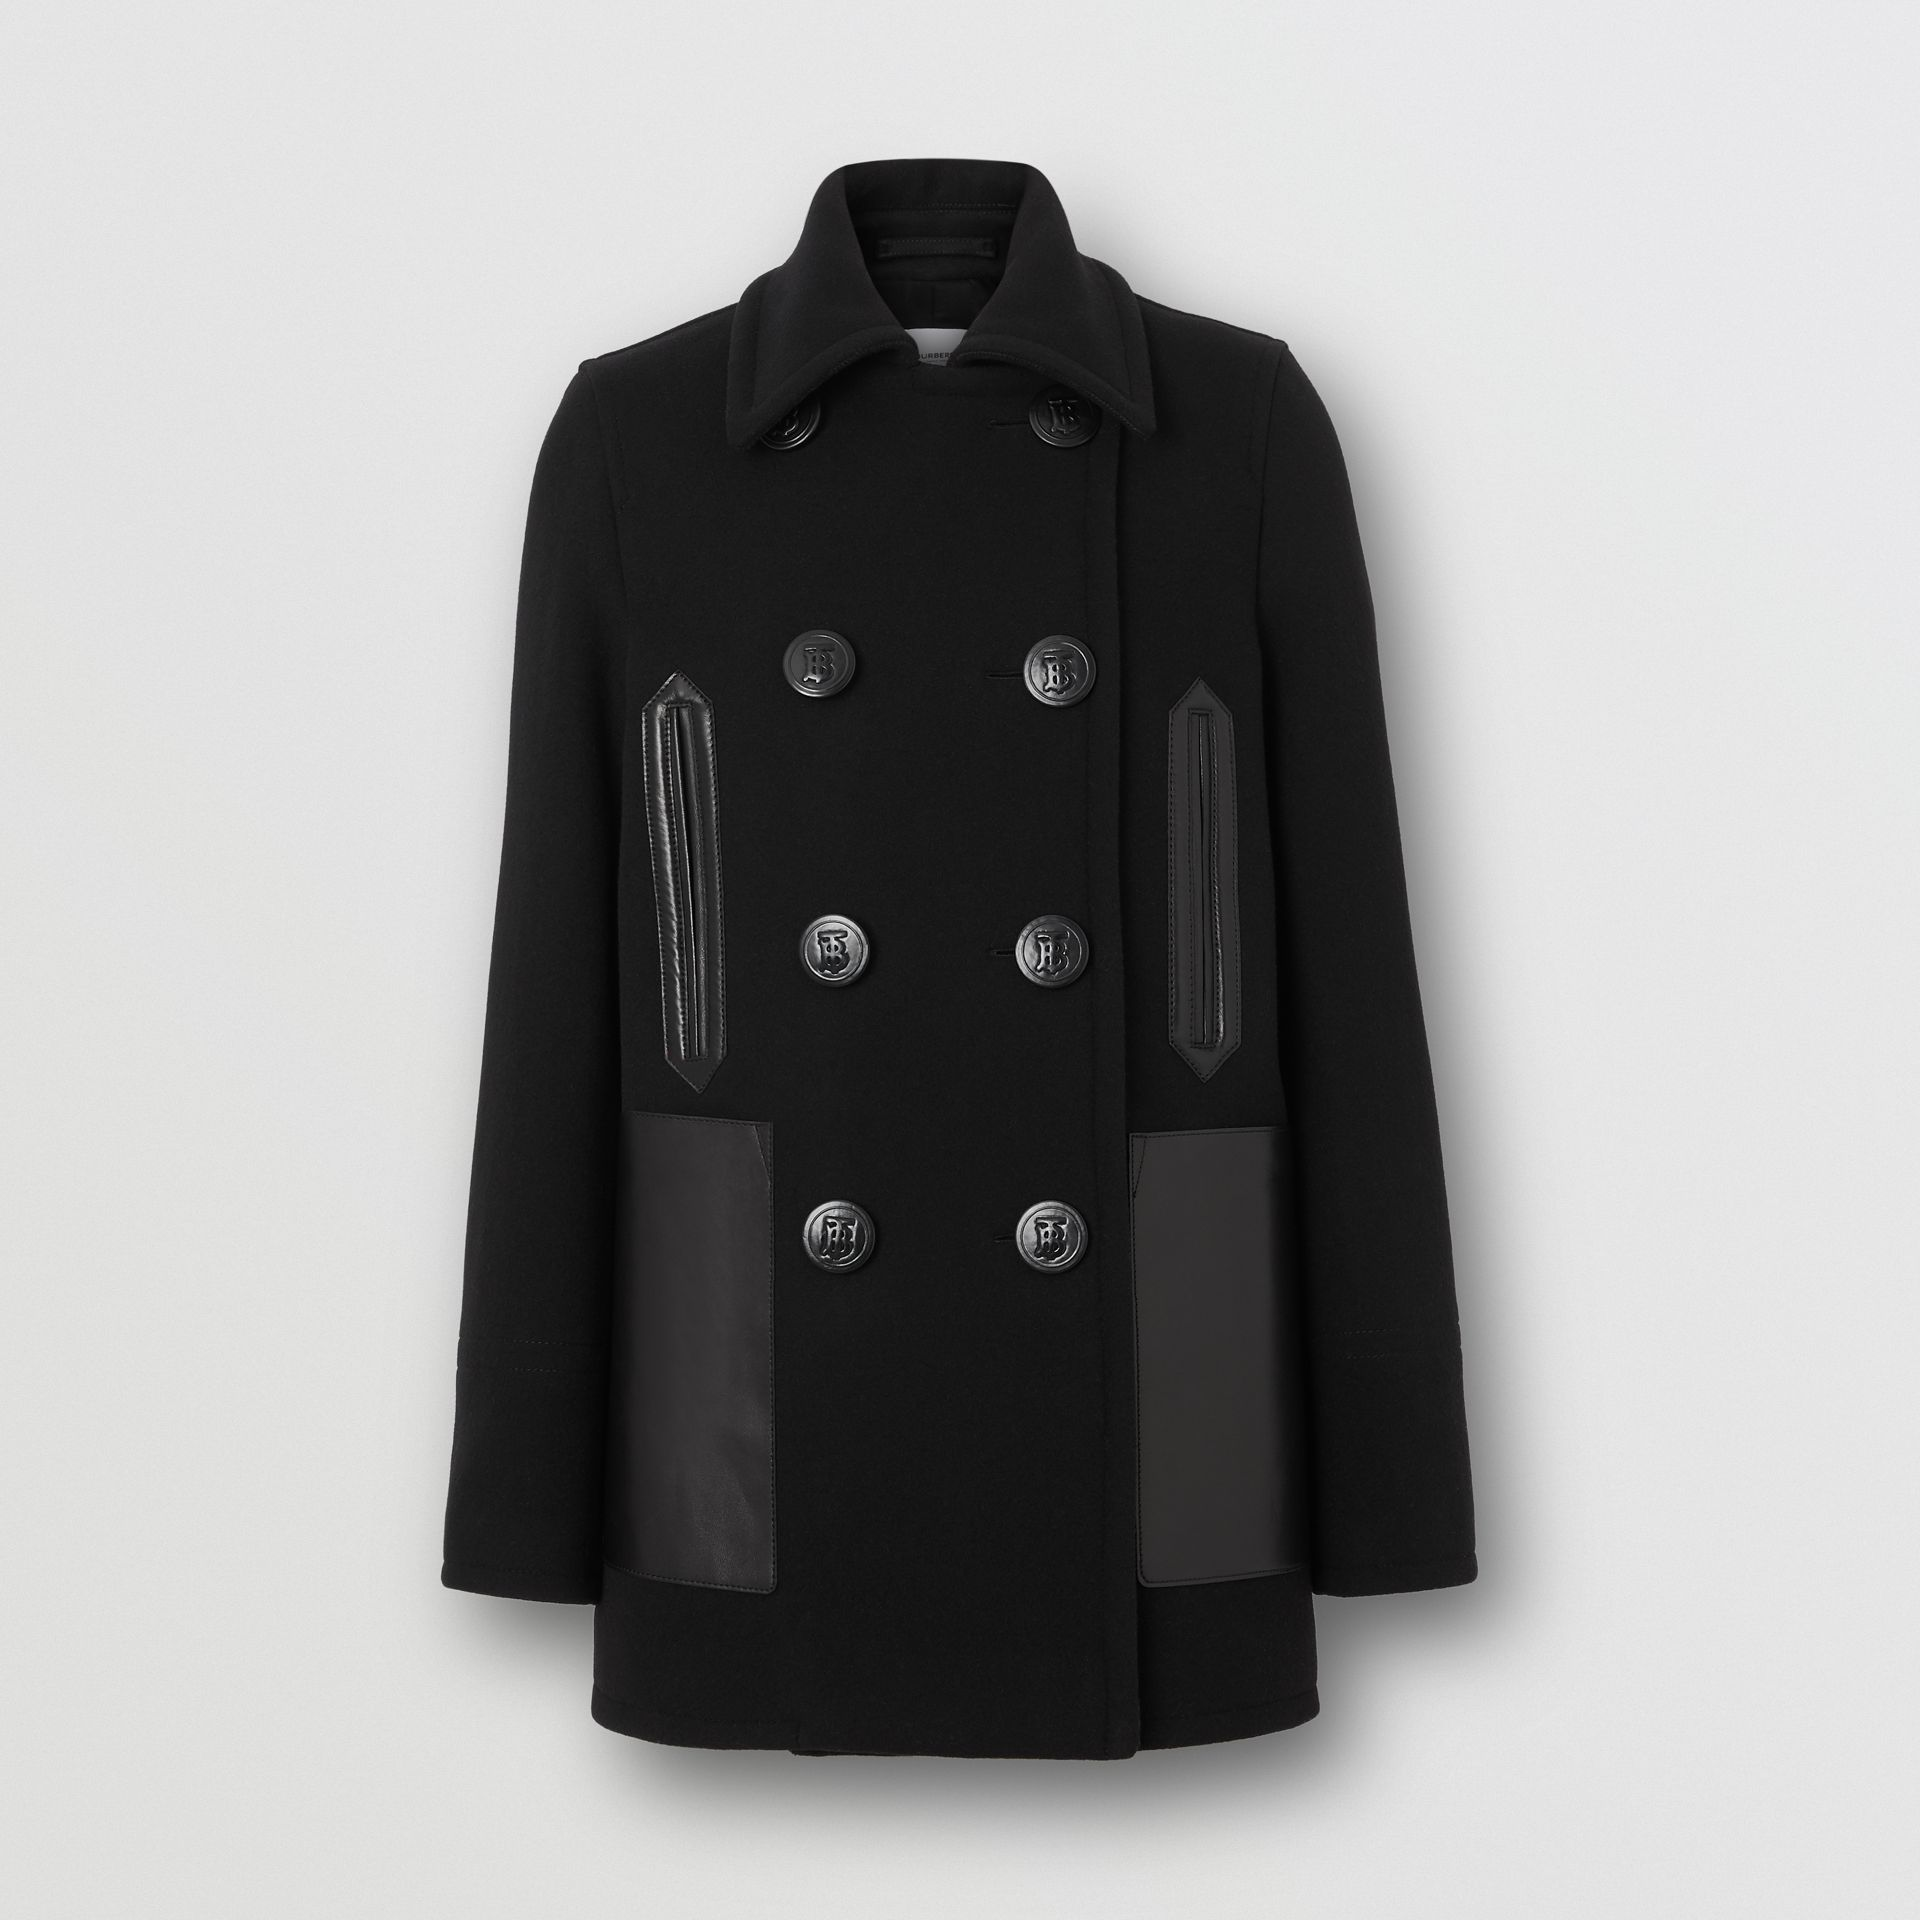 Lambskin Pocket Wool Blend Pea Coat in Black - Women | Burberry Canada - gallery image 3